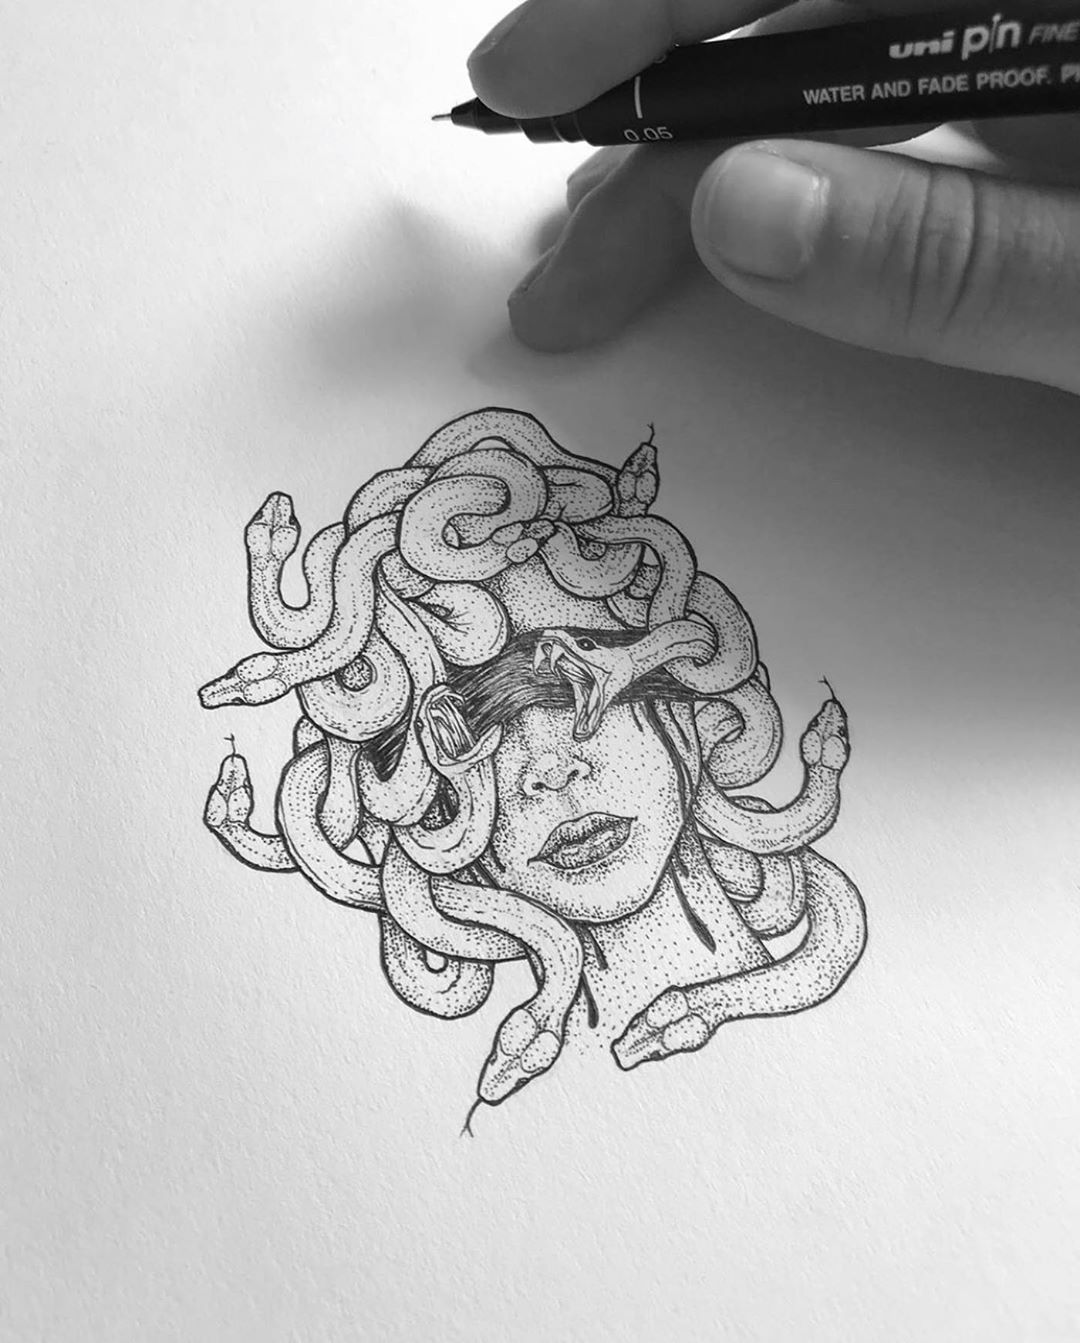 12 8k Likes 61 Comments Pen Ink Illustrations Penandink Art On Instagram Comment Medusa In Your Language In 2020 Tattoos Hand Tattoos Medusa Tattoo Design